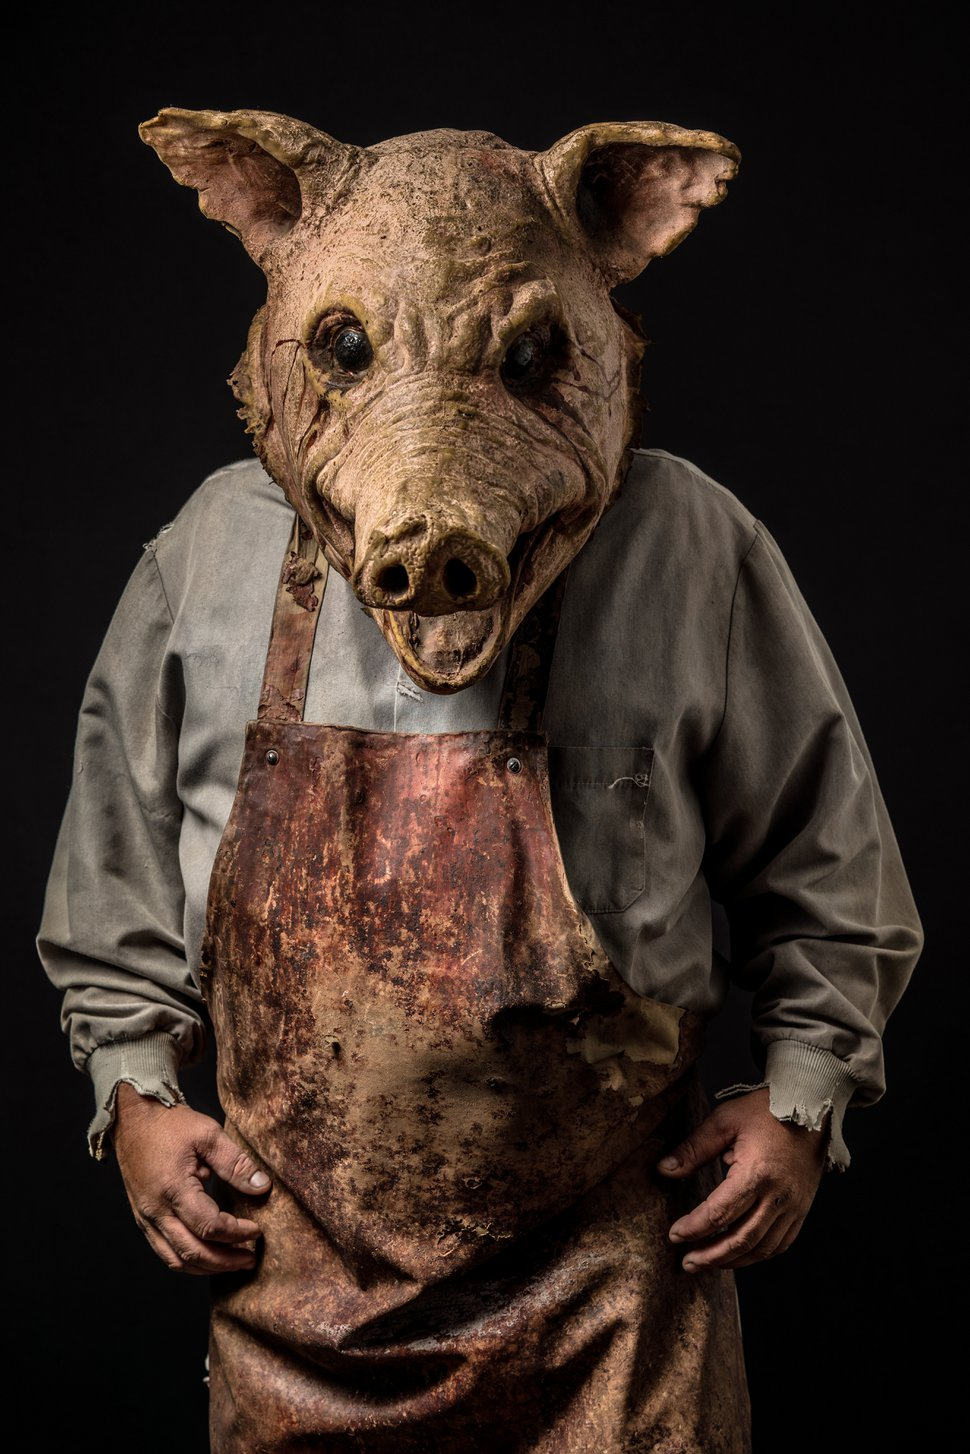 (Photo courtesy of Fear Factory) Butcher Pig is a character at Fear Factory, the haunted house just west of Salt Lake City. Actors are required to wear face masks, to prevent the spread of COVID-19, and the masks often are incorporated into the costumes.